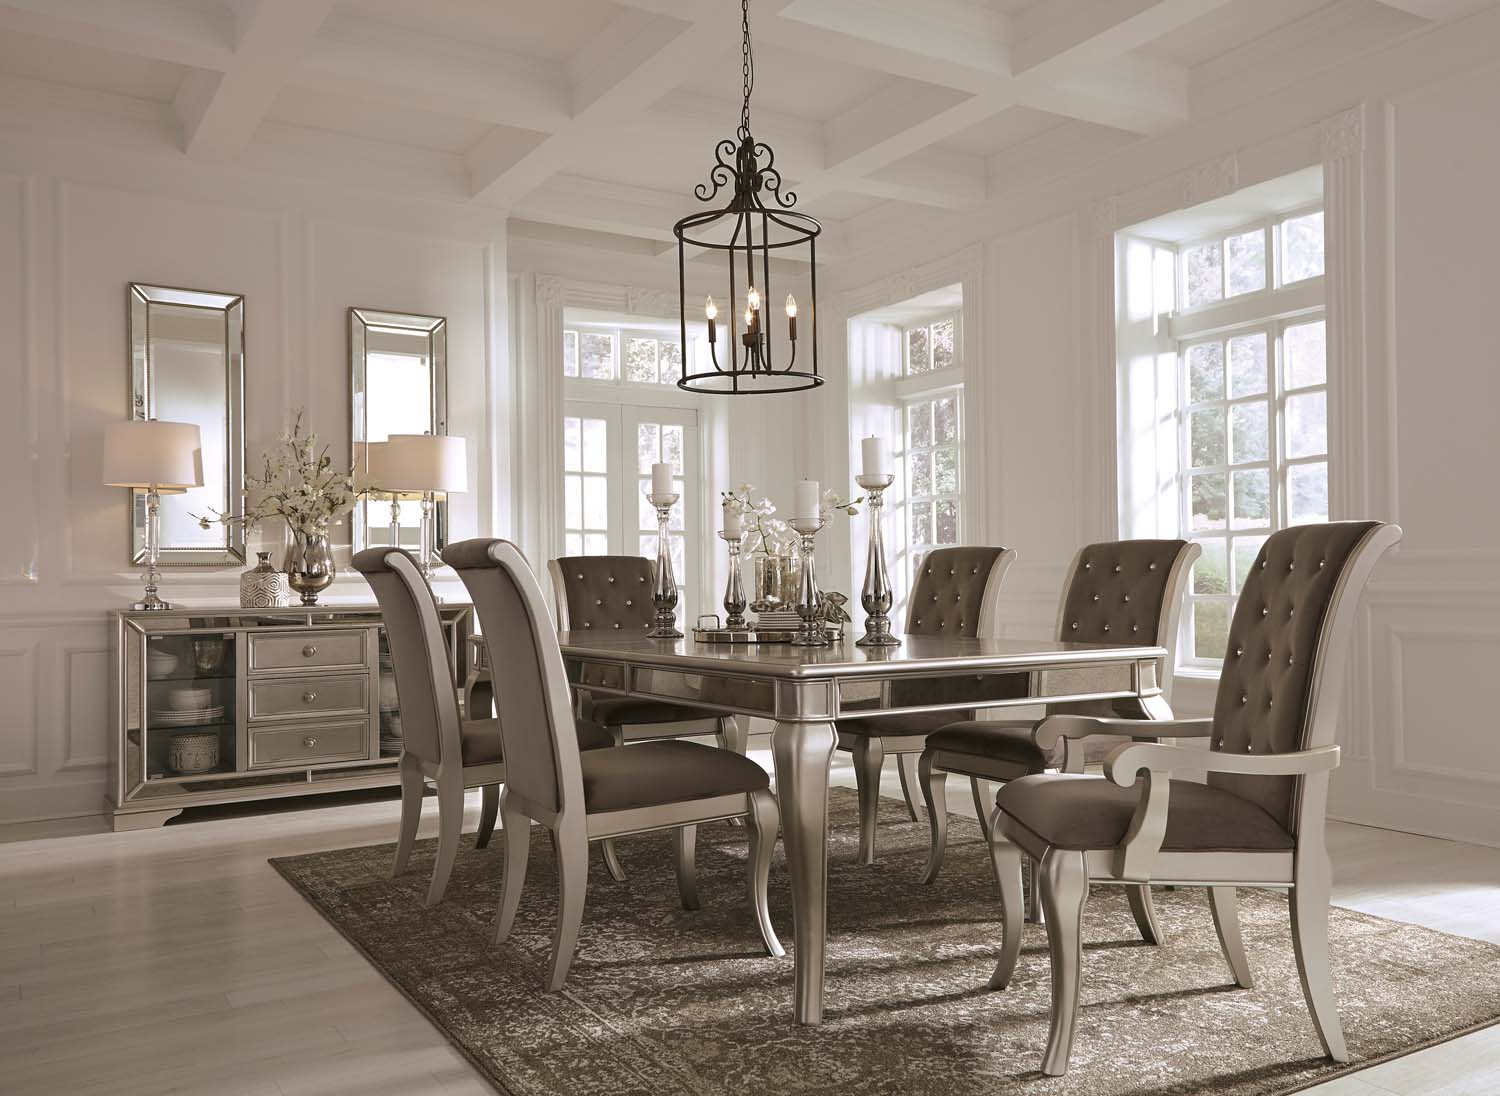 Birlanny   Silver Set Of 2 Dining Room Chairs